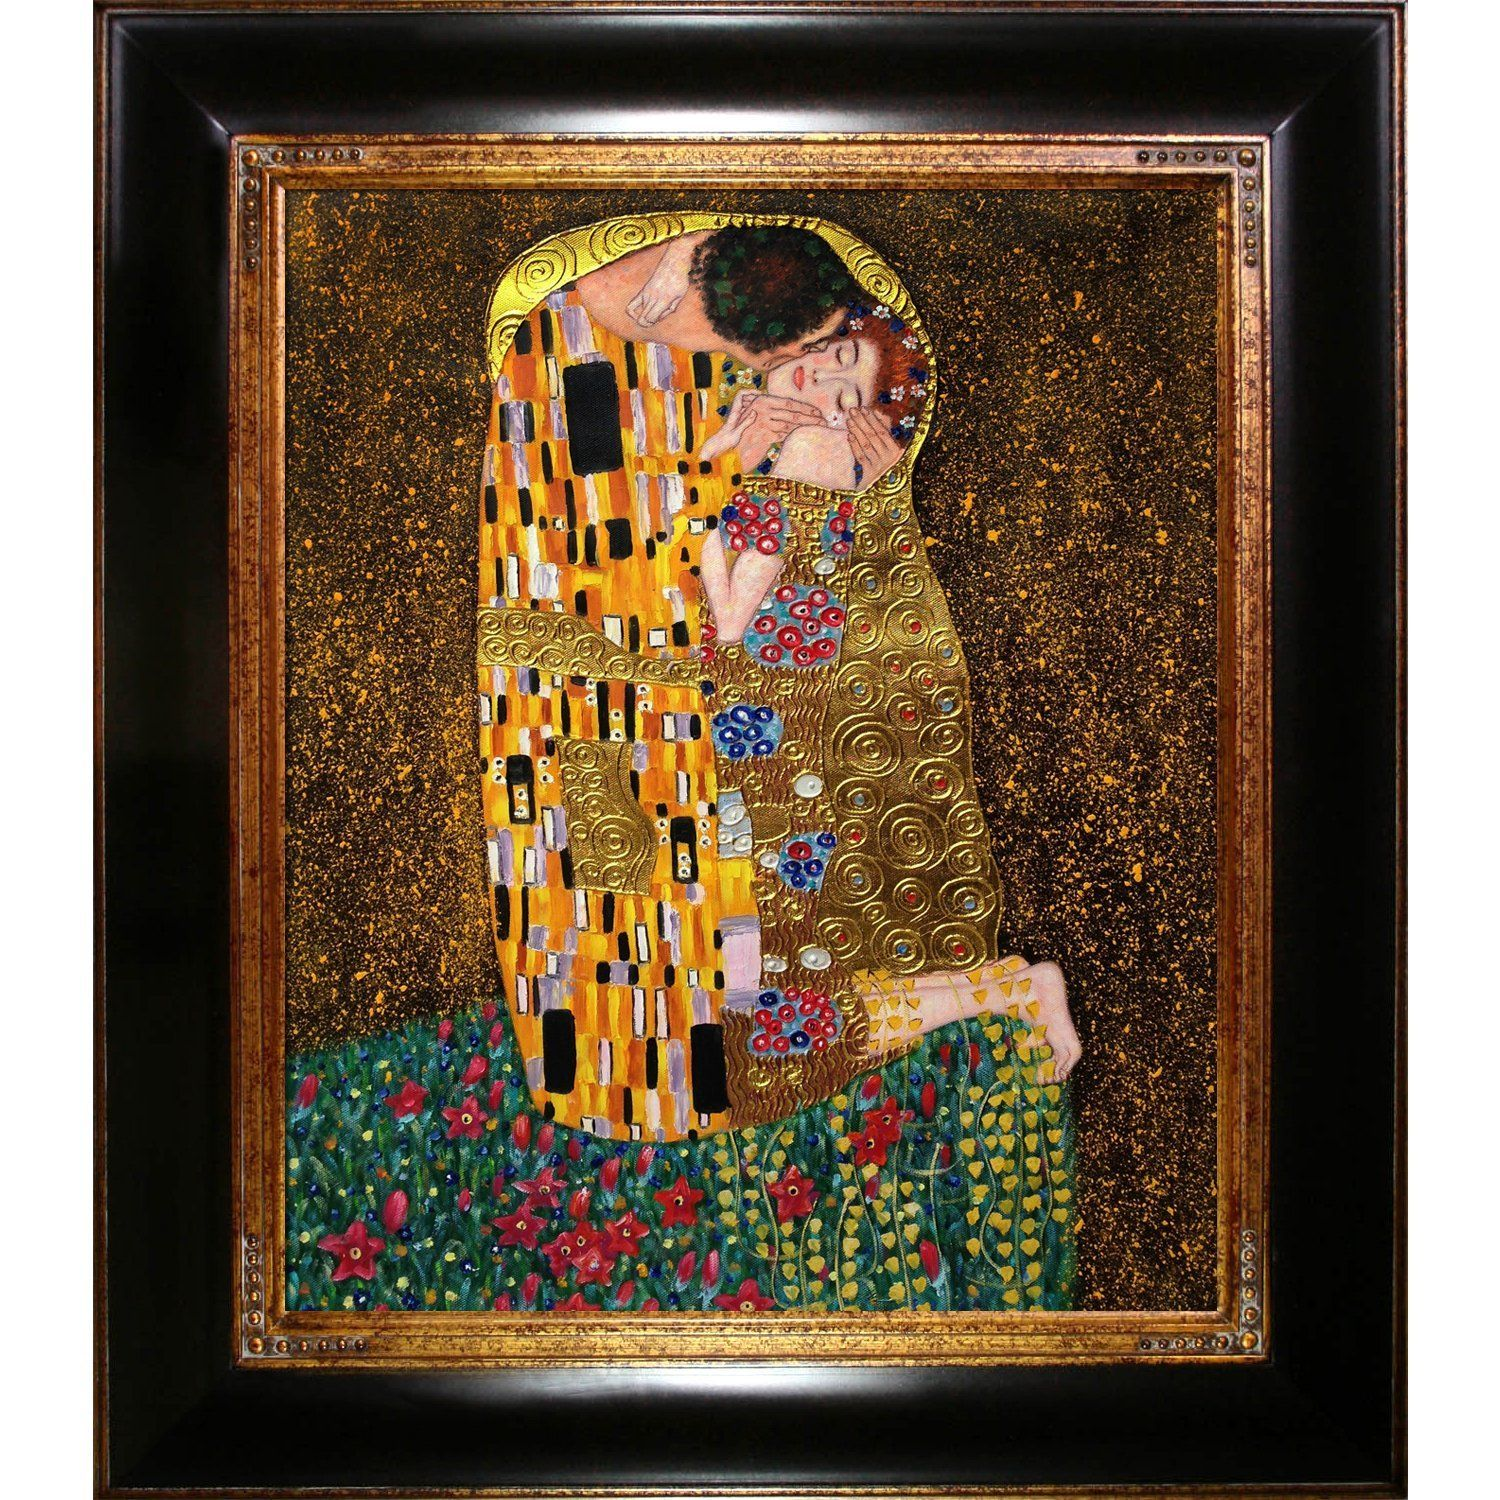 overstockArt The Kiss Full View Luxury Line Framed Oil Reproduction ...